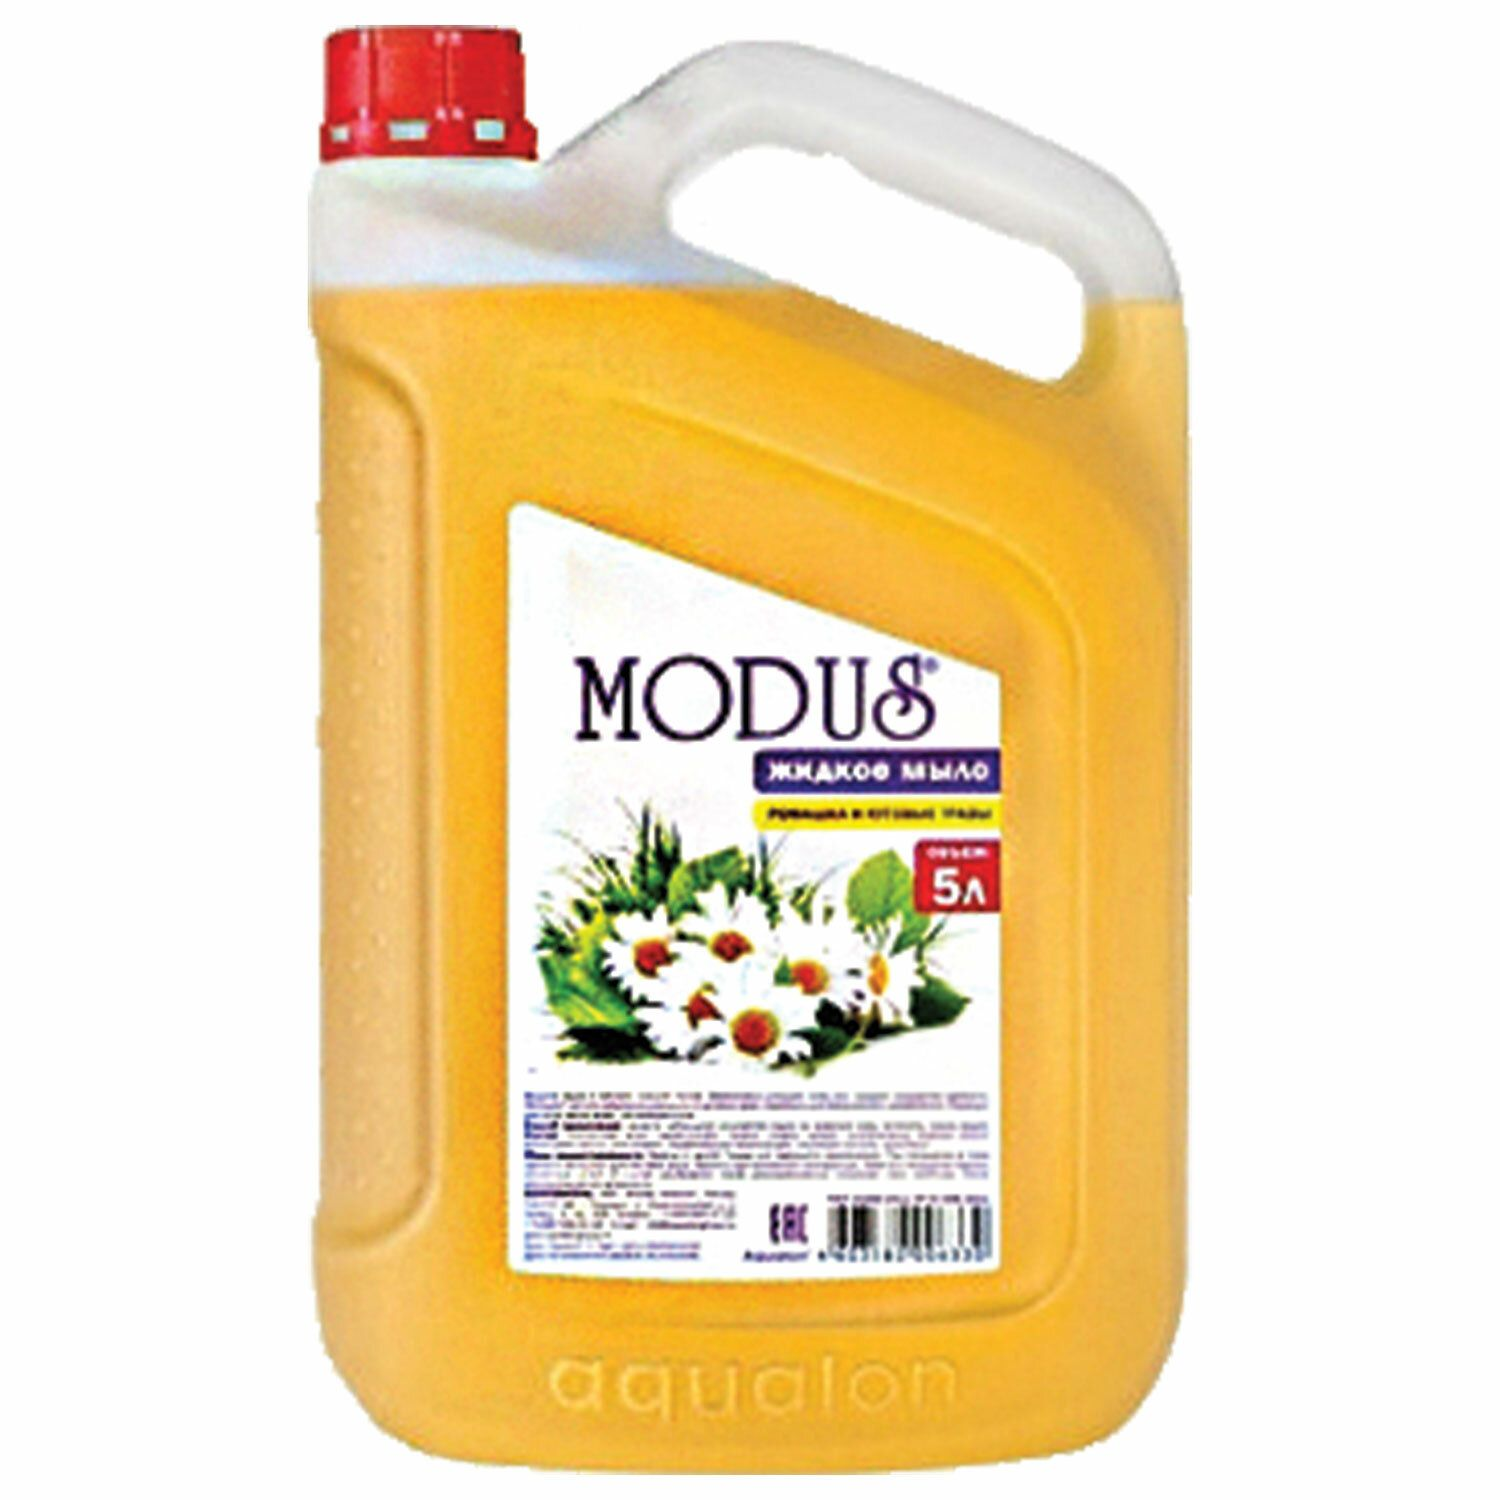 "Liquid soap 5 litre MODUS ""Daisy and meadow grass"""